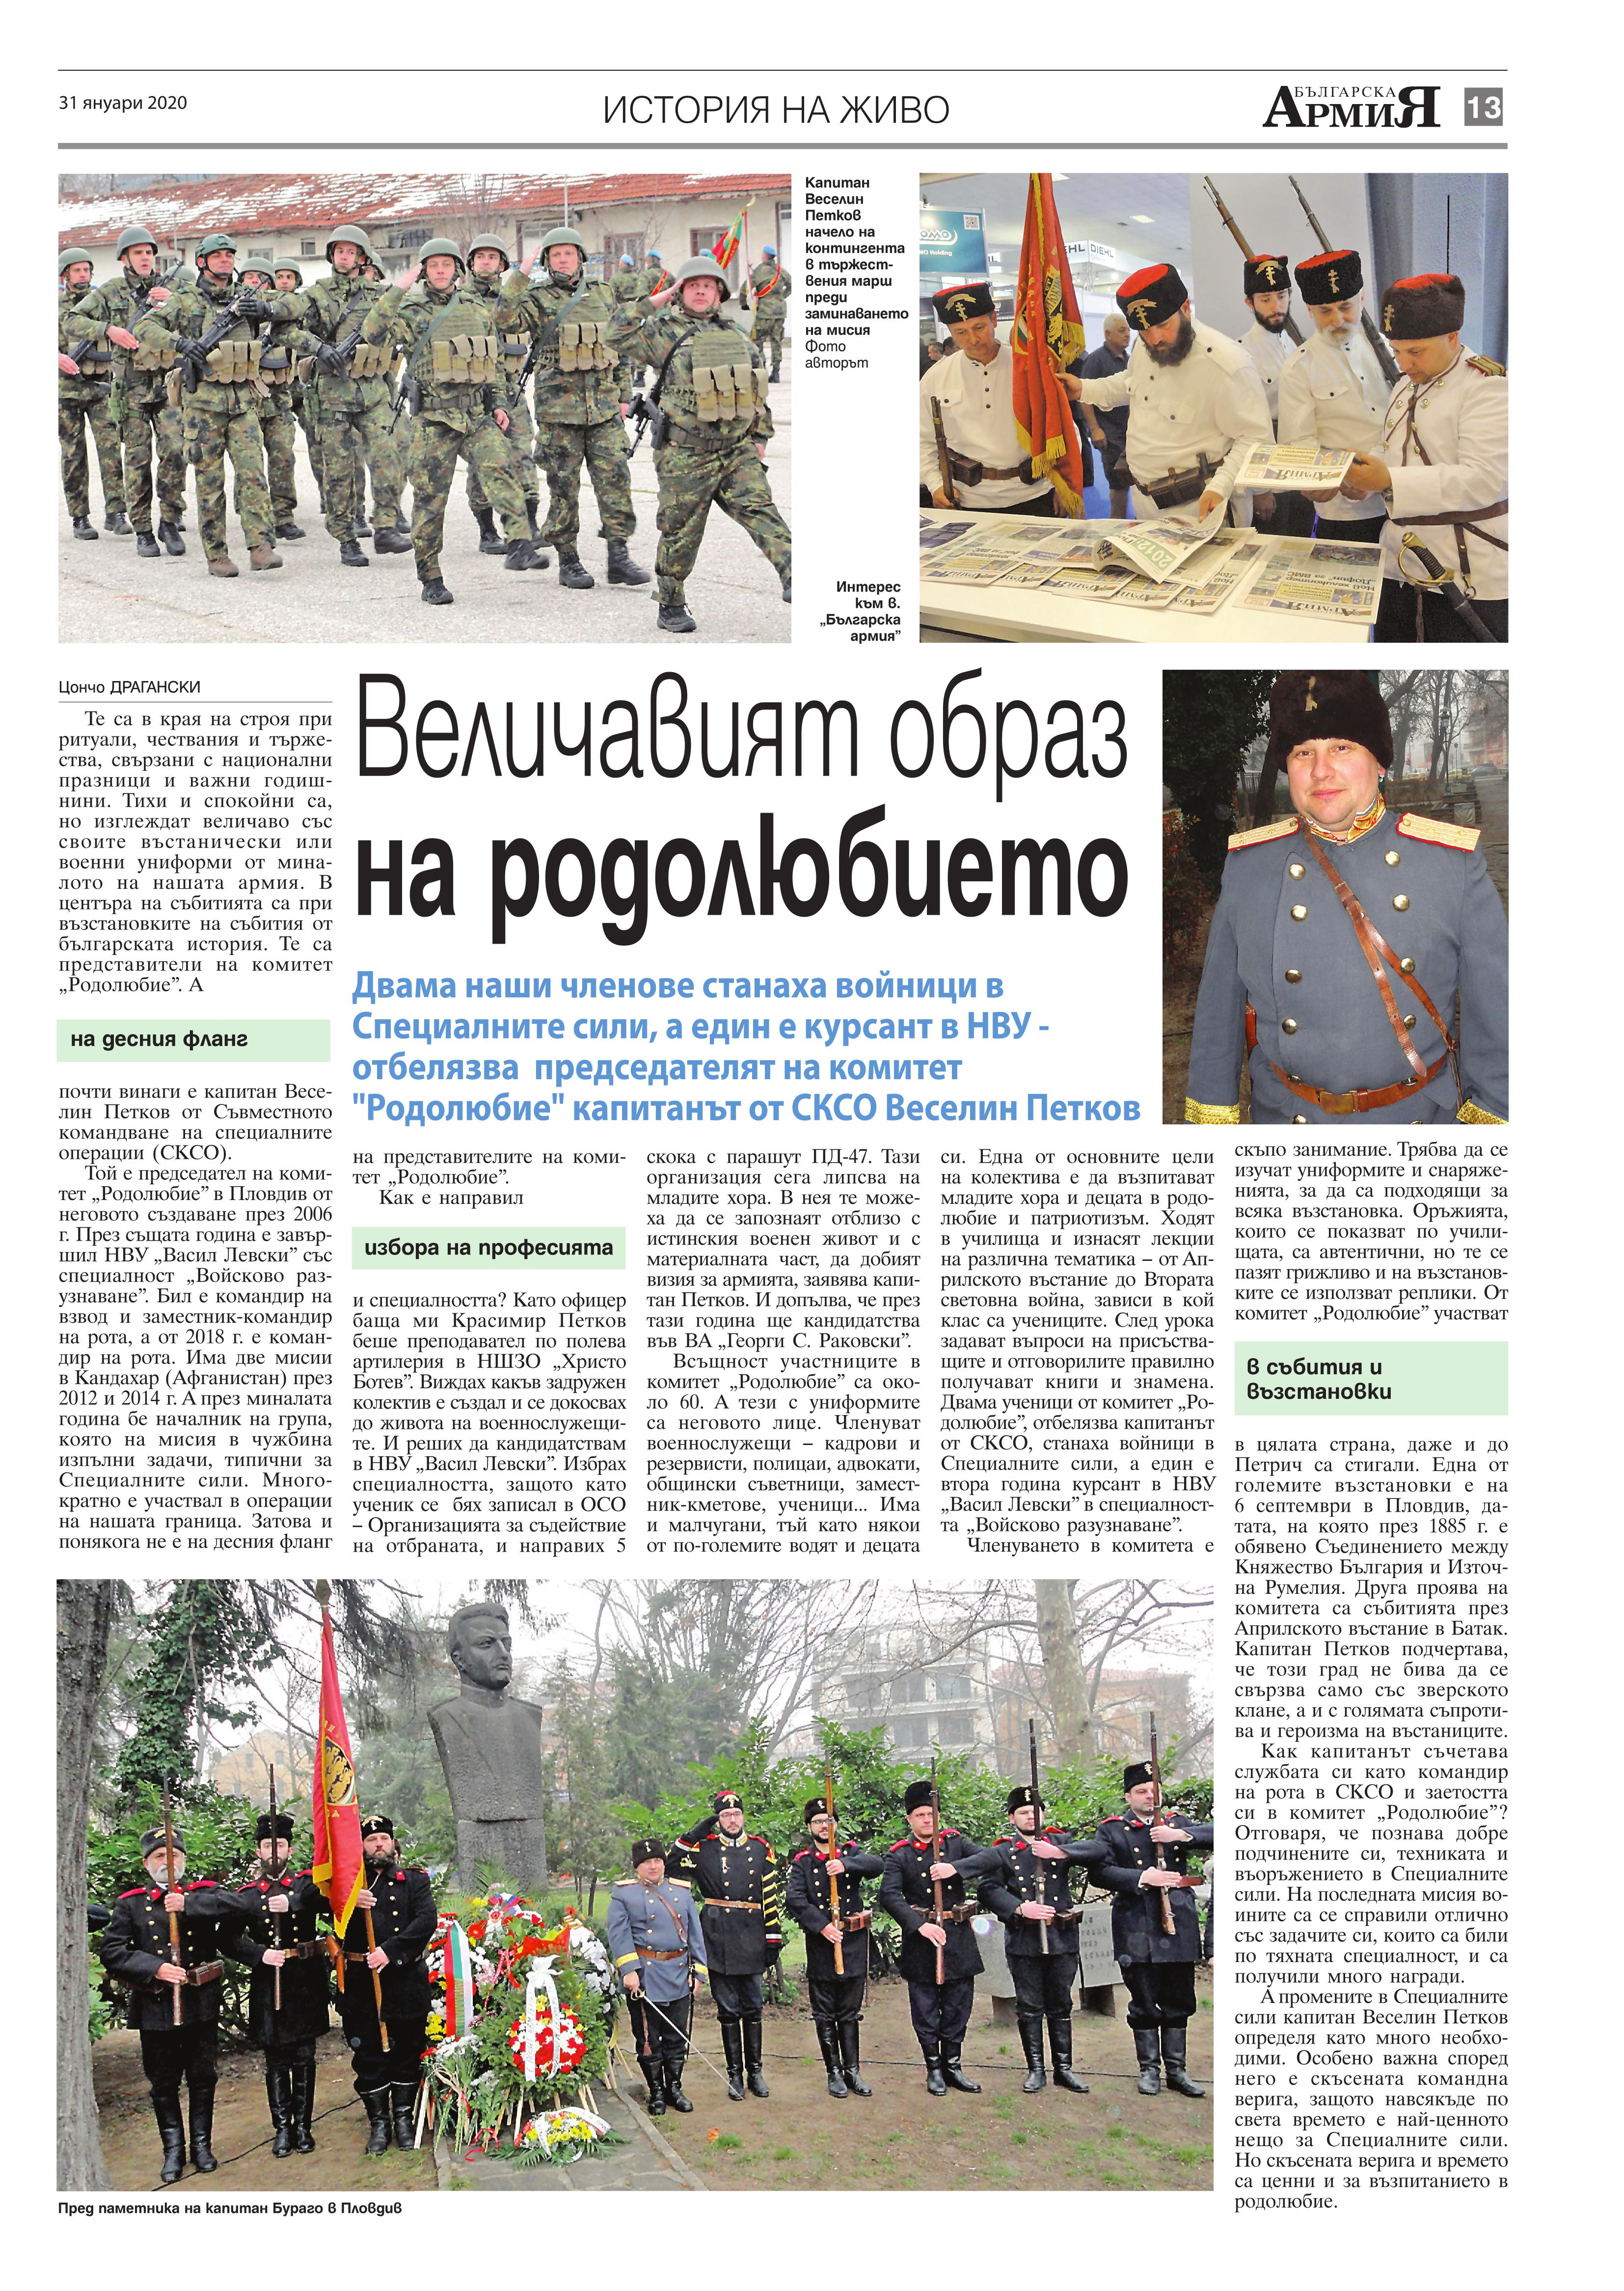 https://armymedia.bg/wp-content/uploads/2015/06/13.page1_-125.jpg